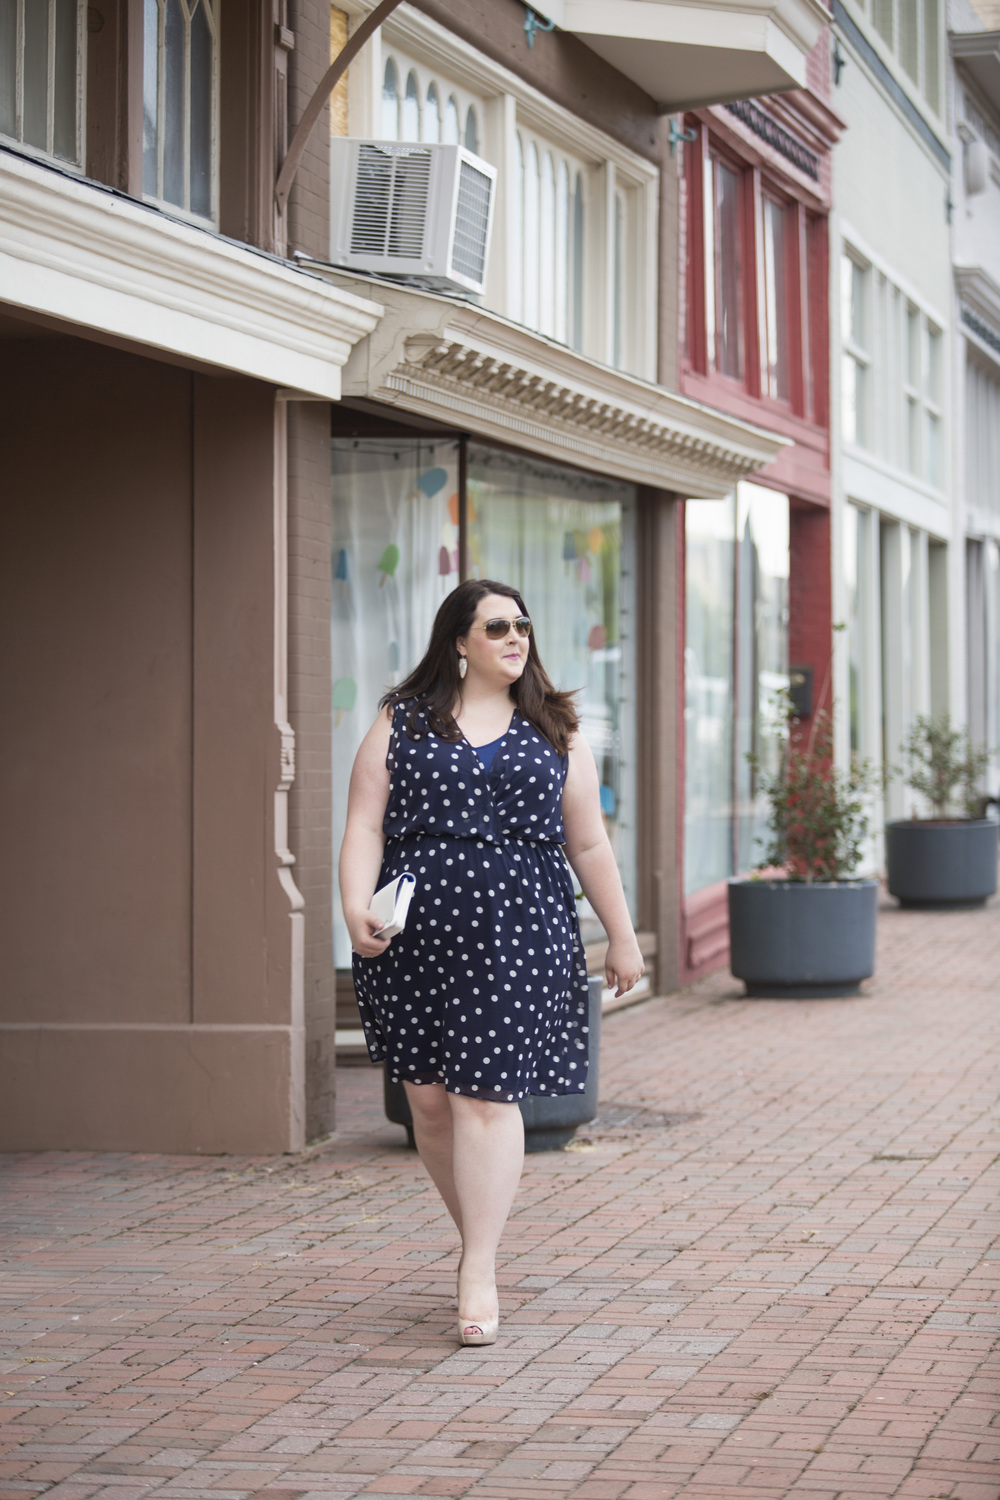 Plus Size Street Style Navy Polka Dot Dress Wedding Guest 10.jpg